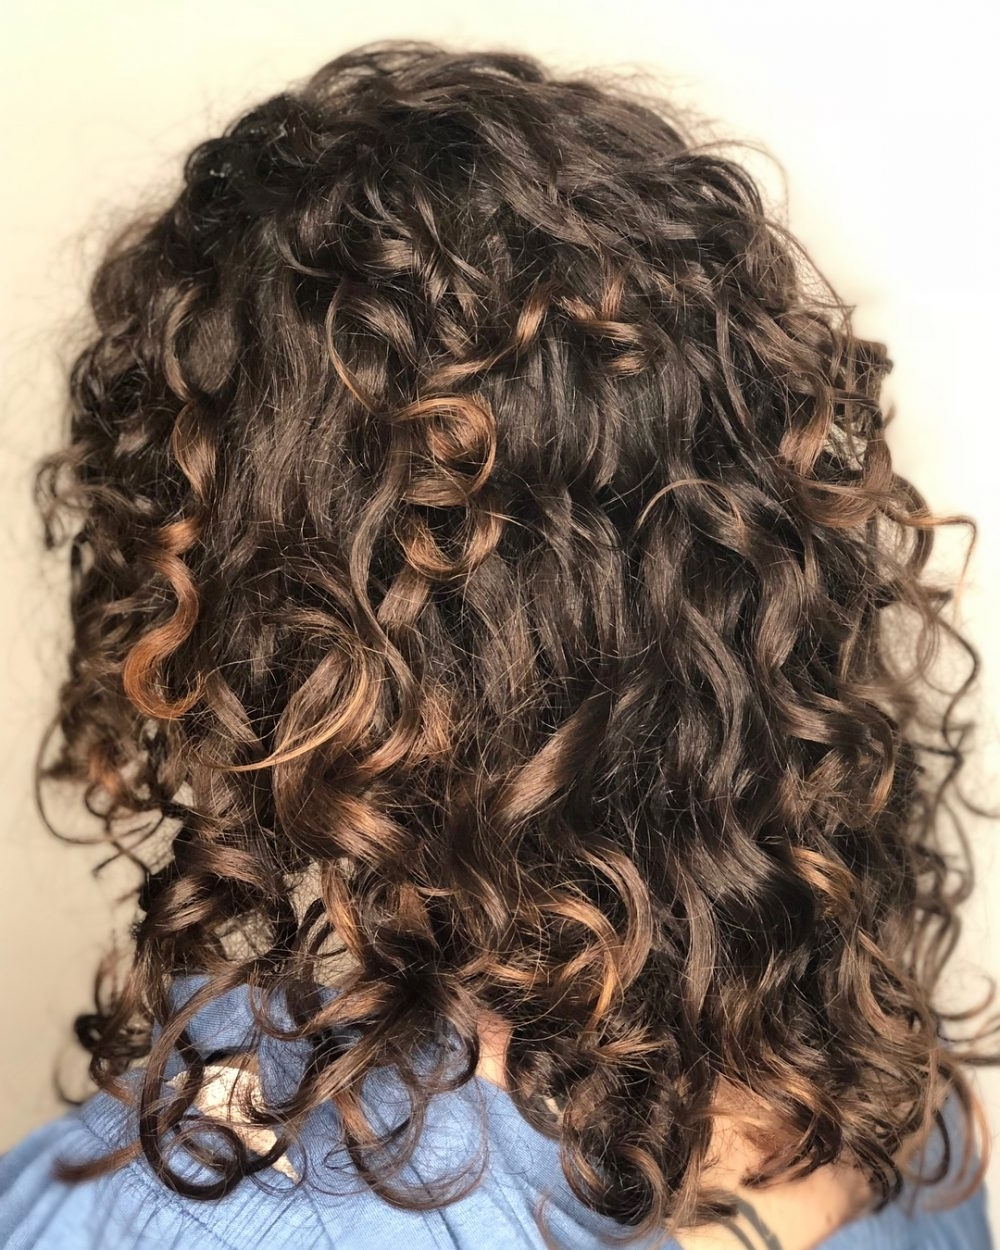 25 Best Shoulder Length Curly Hair Cuts & Styles In 2021 40+ Stunning Medium Thin Curly Hairstyles